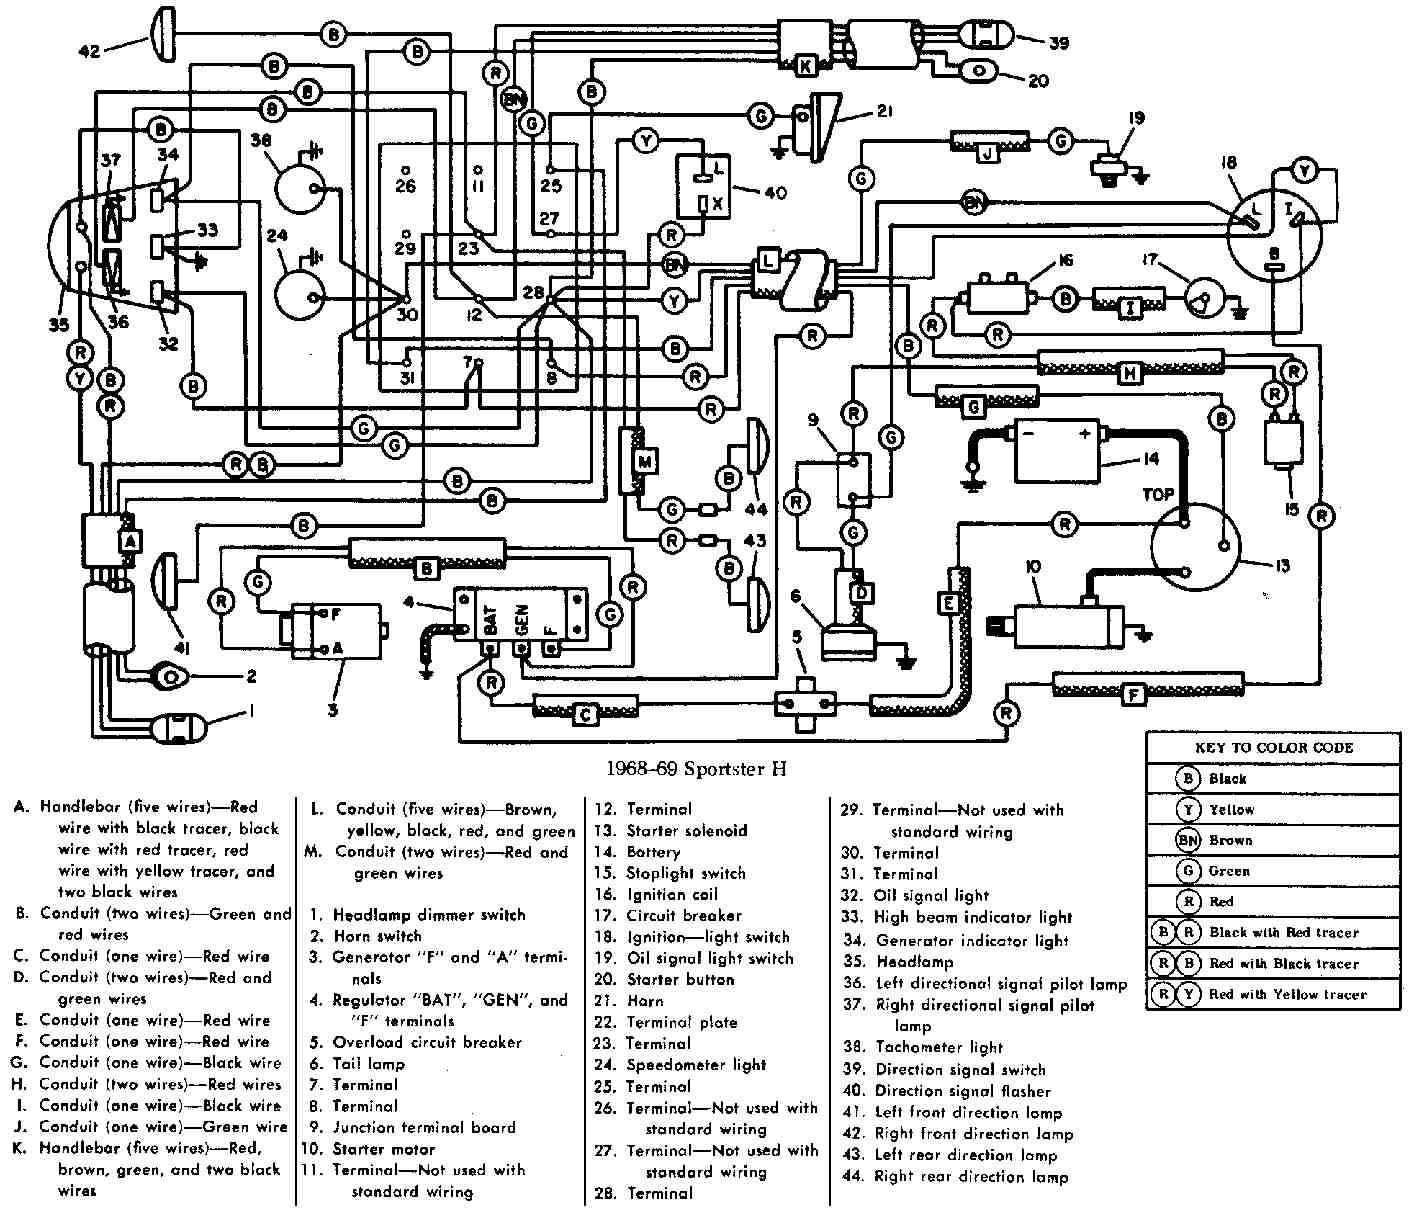 Harley Davidson - Motorcycles Manual PDF, Wiring Diagram ... on ford electronic ignition wiring diagram, chrysler electronic ignition wiring diagram, dodge electronic ignition wiring diagram, toyota electronic ignition wiring diagram,